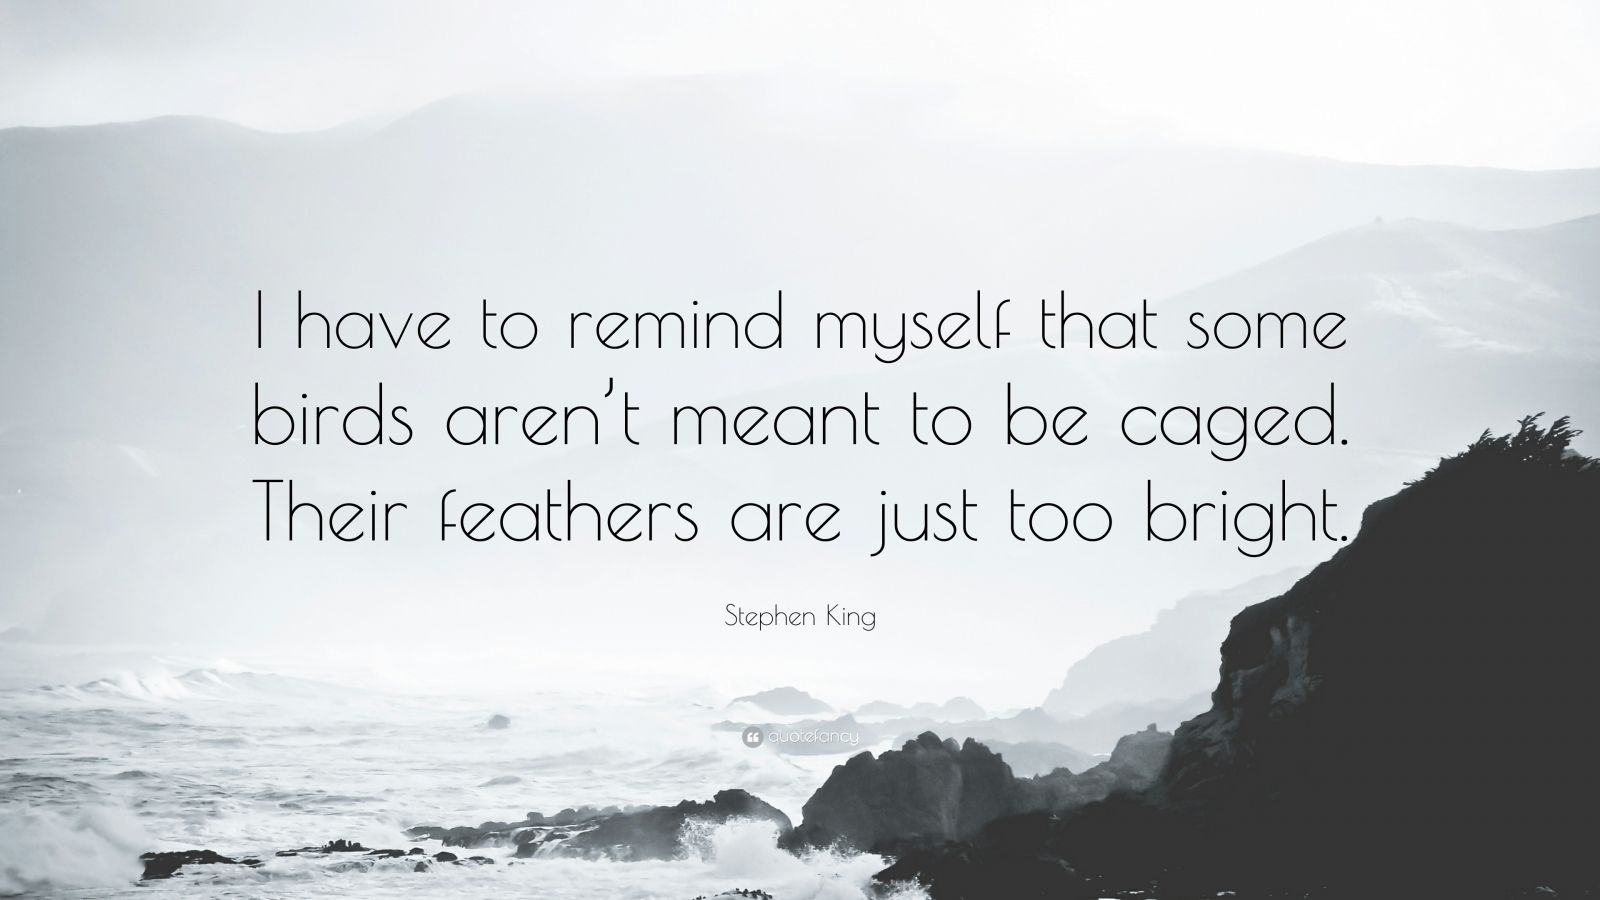 """Stephen King Quote: """"I have to remind myself that some birds aren't meant to be caged. Their feathers are just too bright."""""""